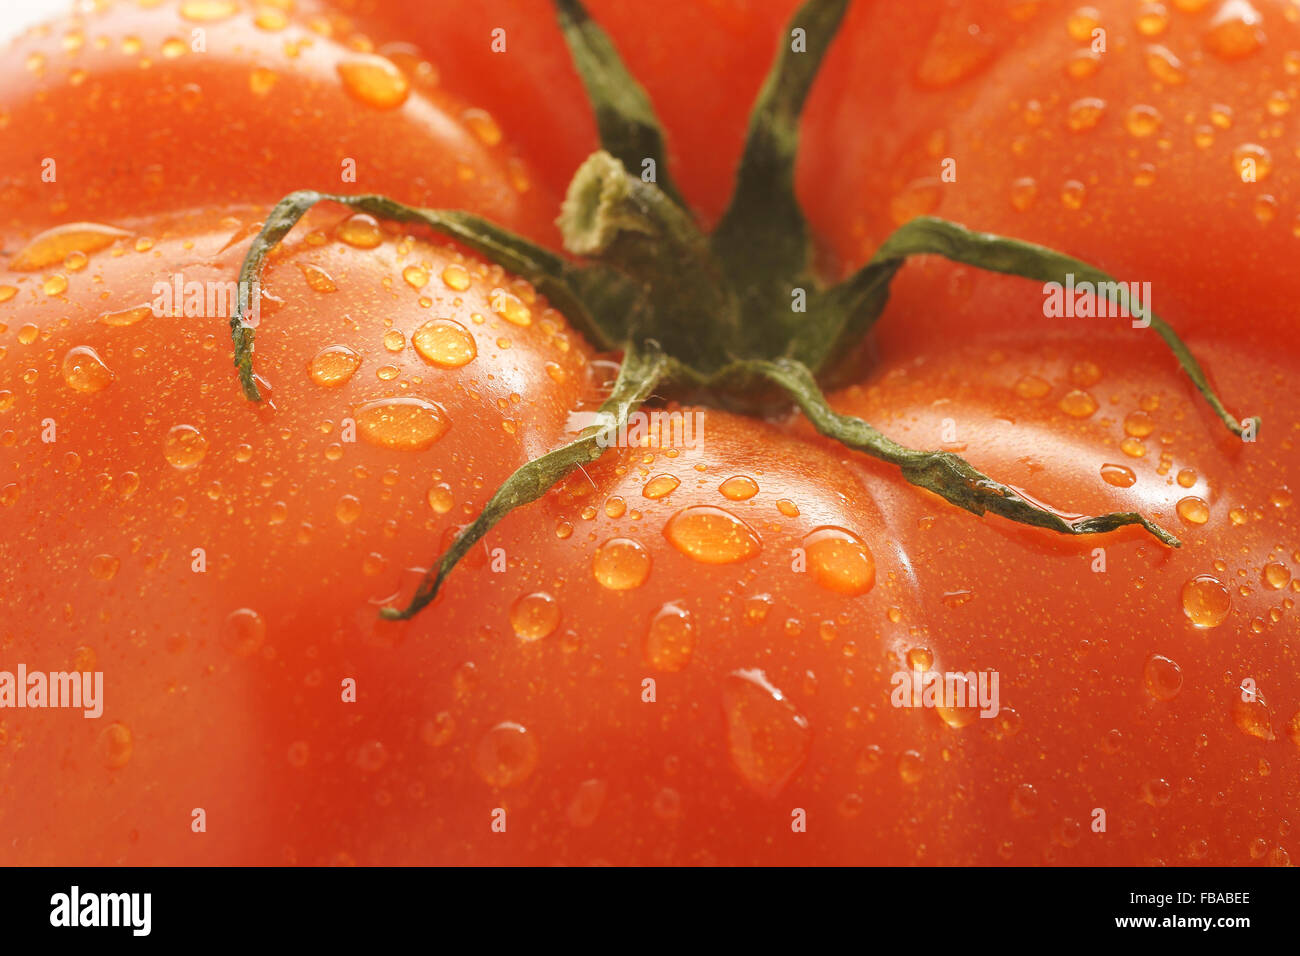 Fresh and plump beefsteak tomato - Stock Image